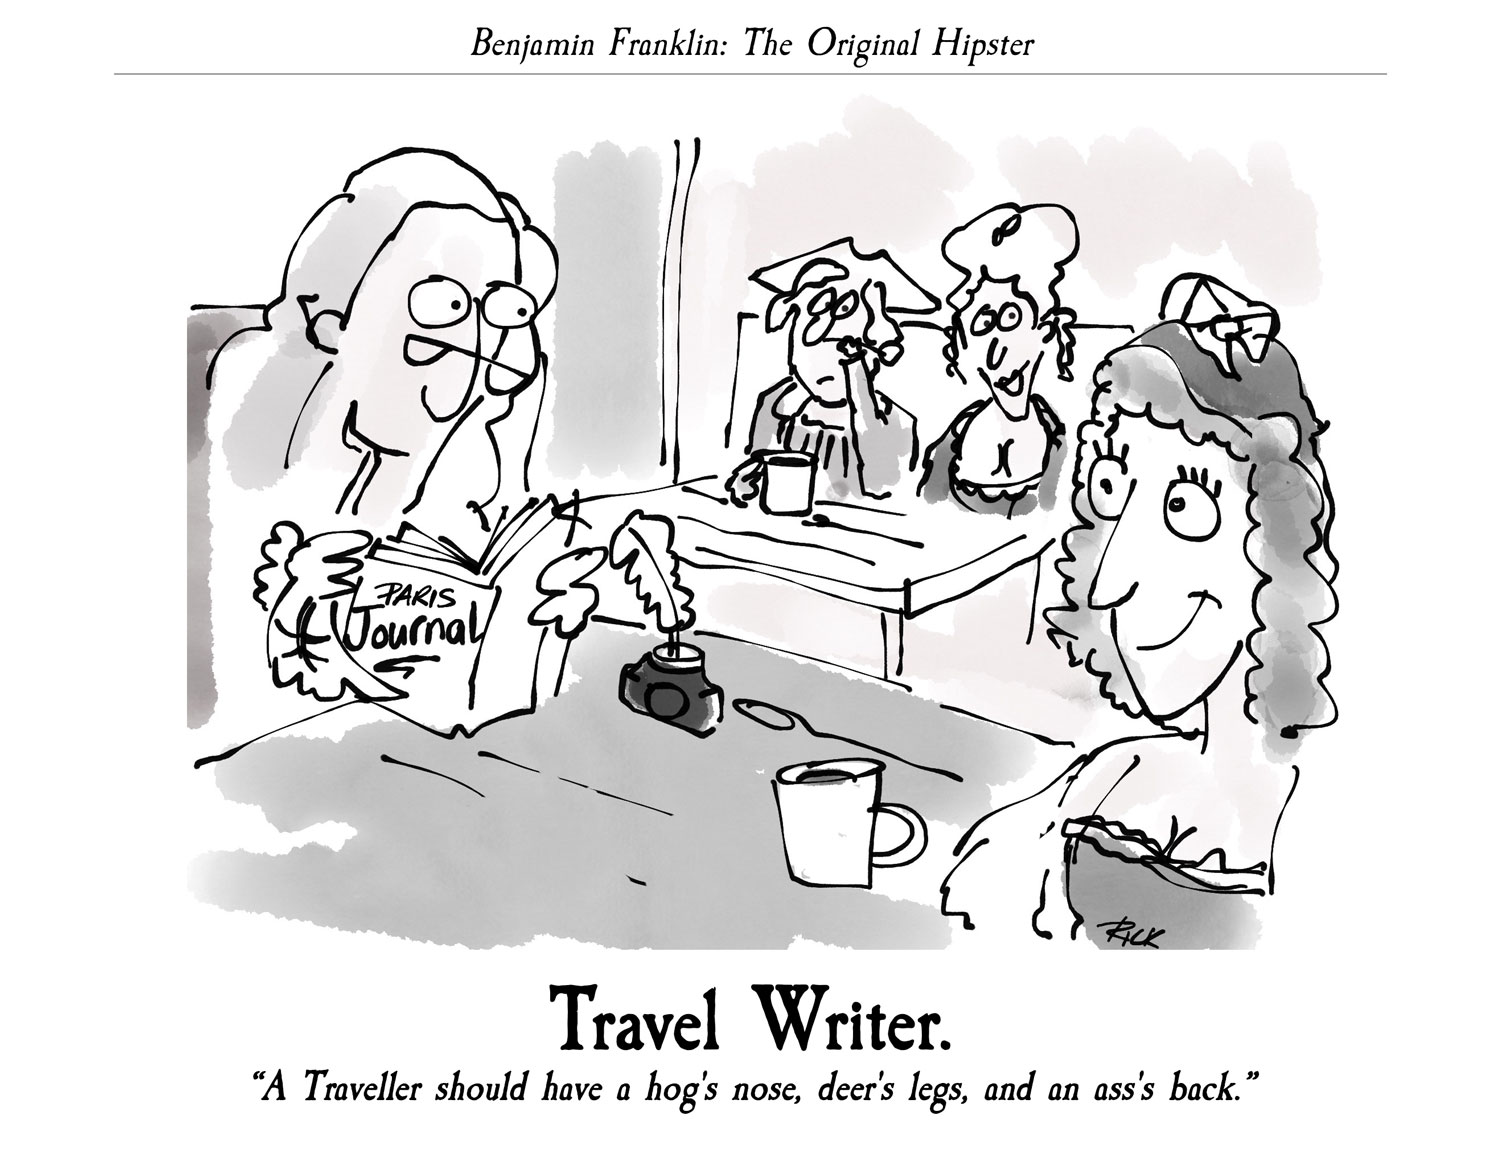 Benjamin Franklin: The Original Hipster - Travel Writer